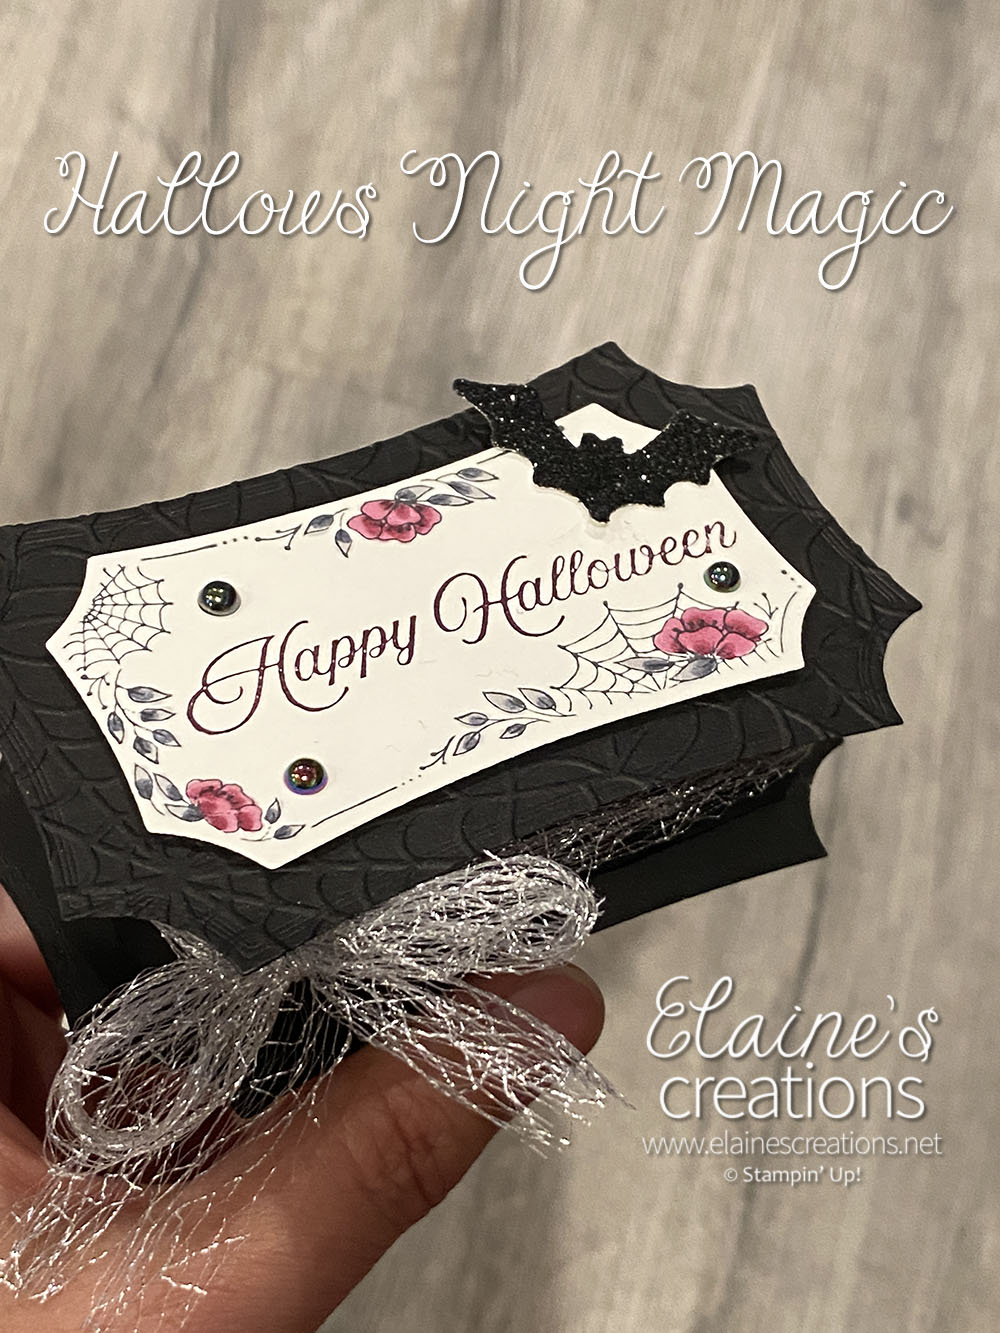 hallows night magic box